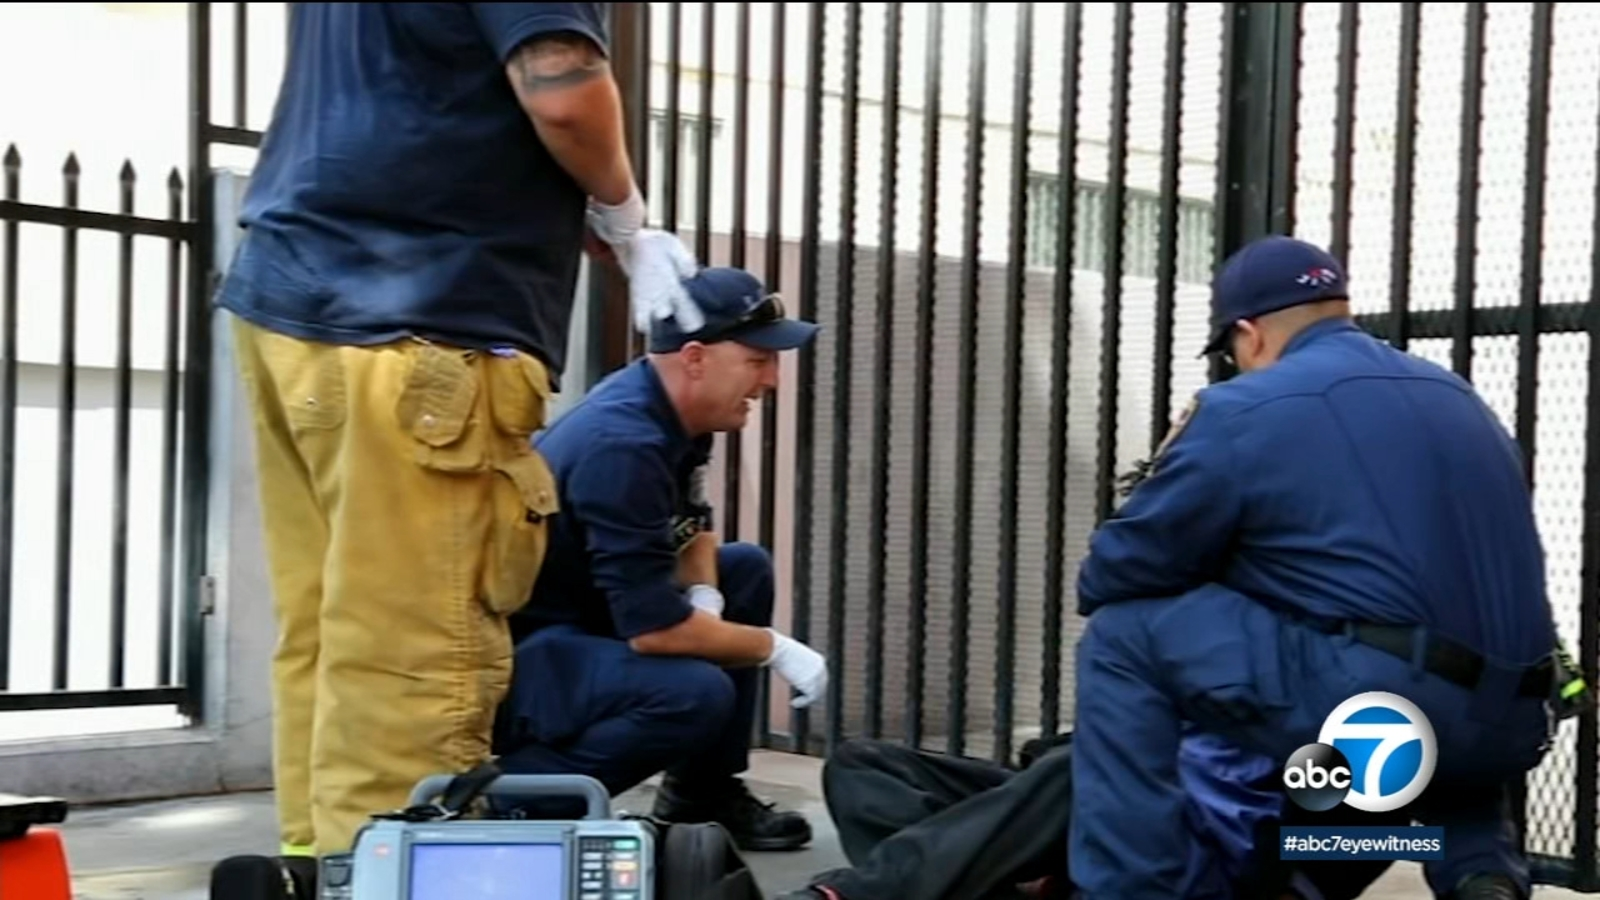 LAFD incidents involving the homeless disproportionately high, data shows